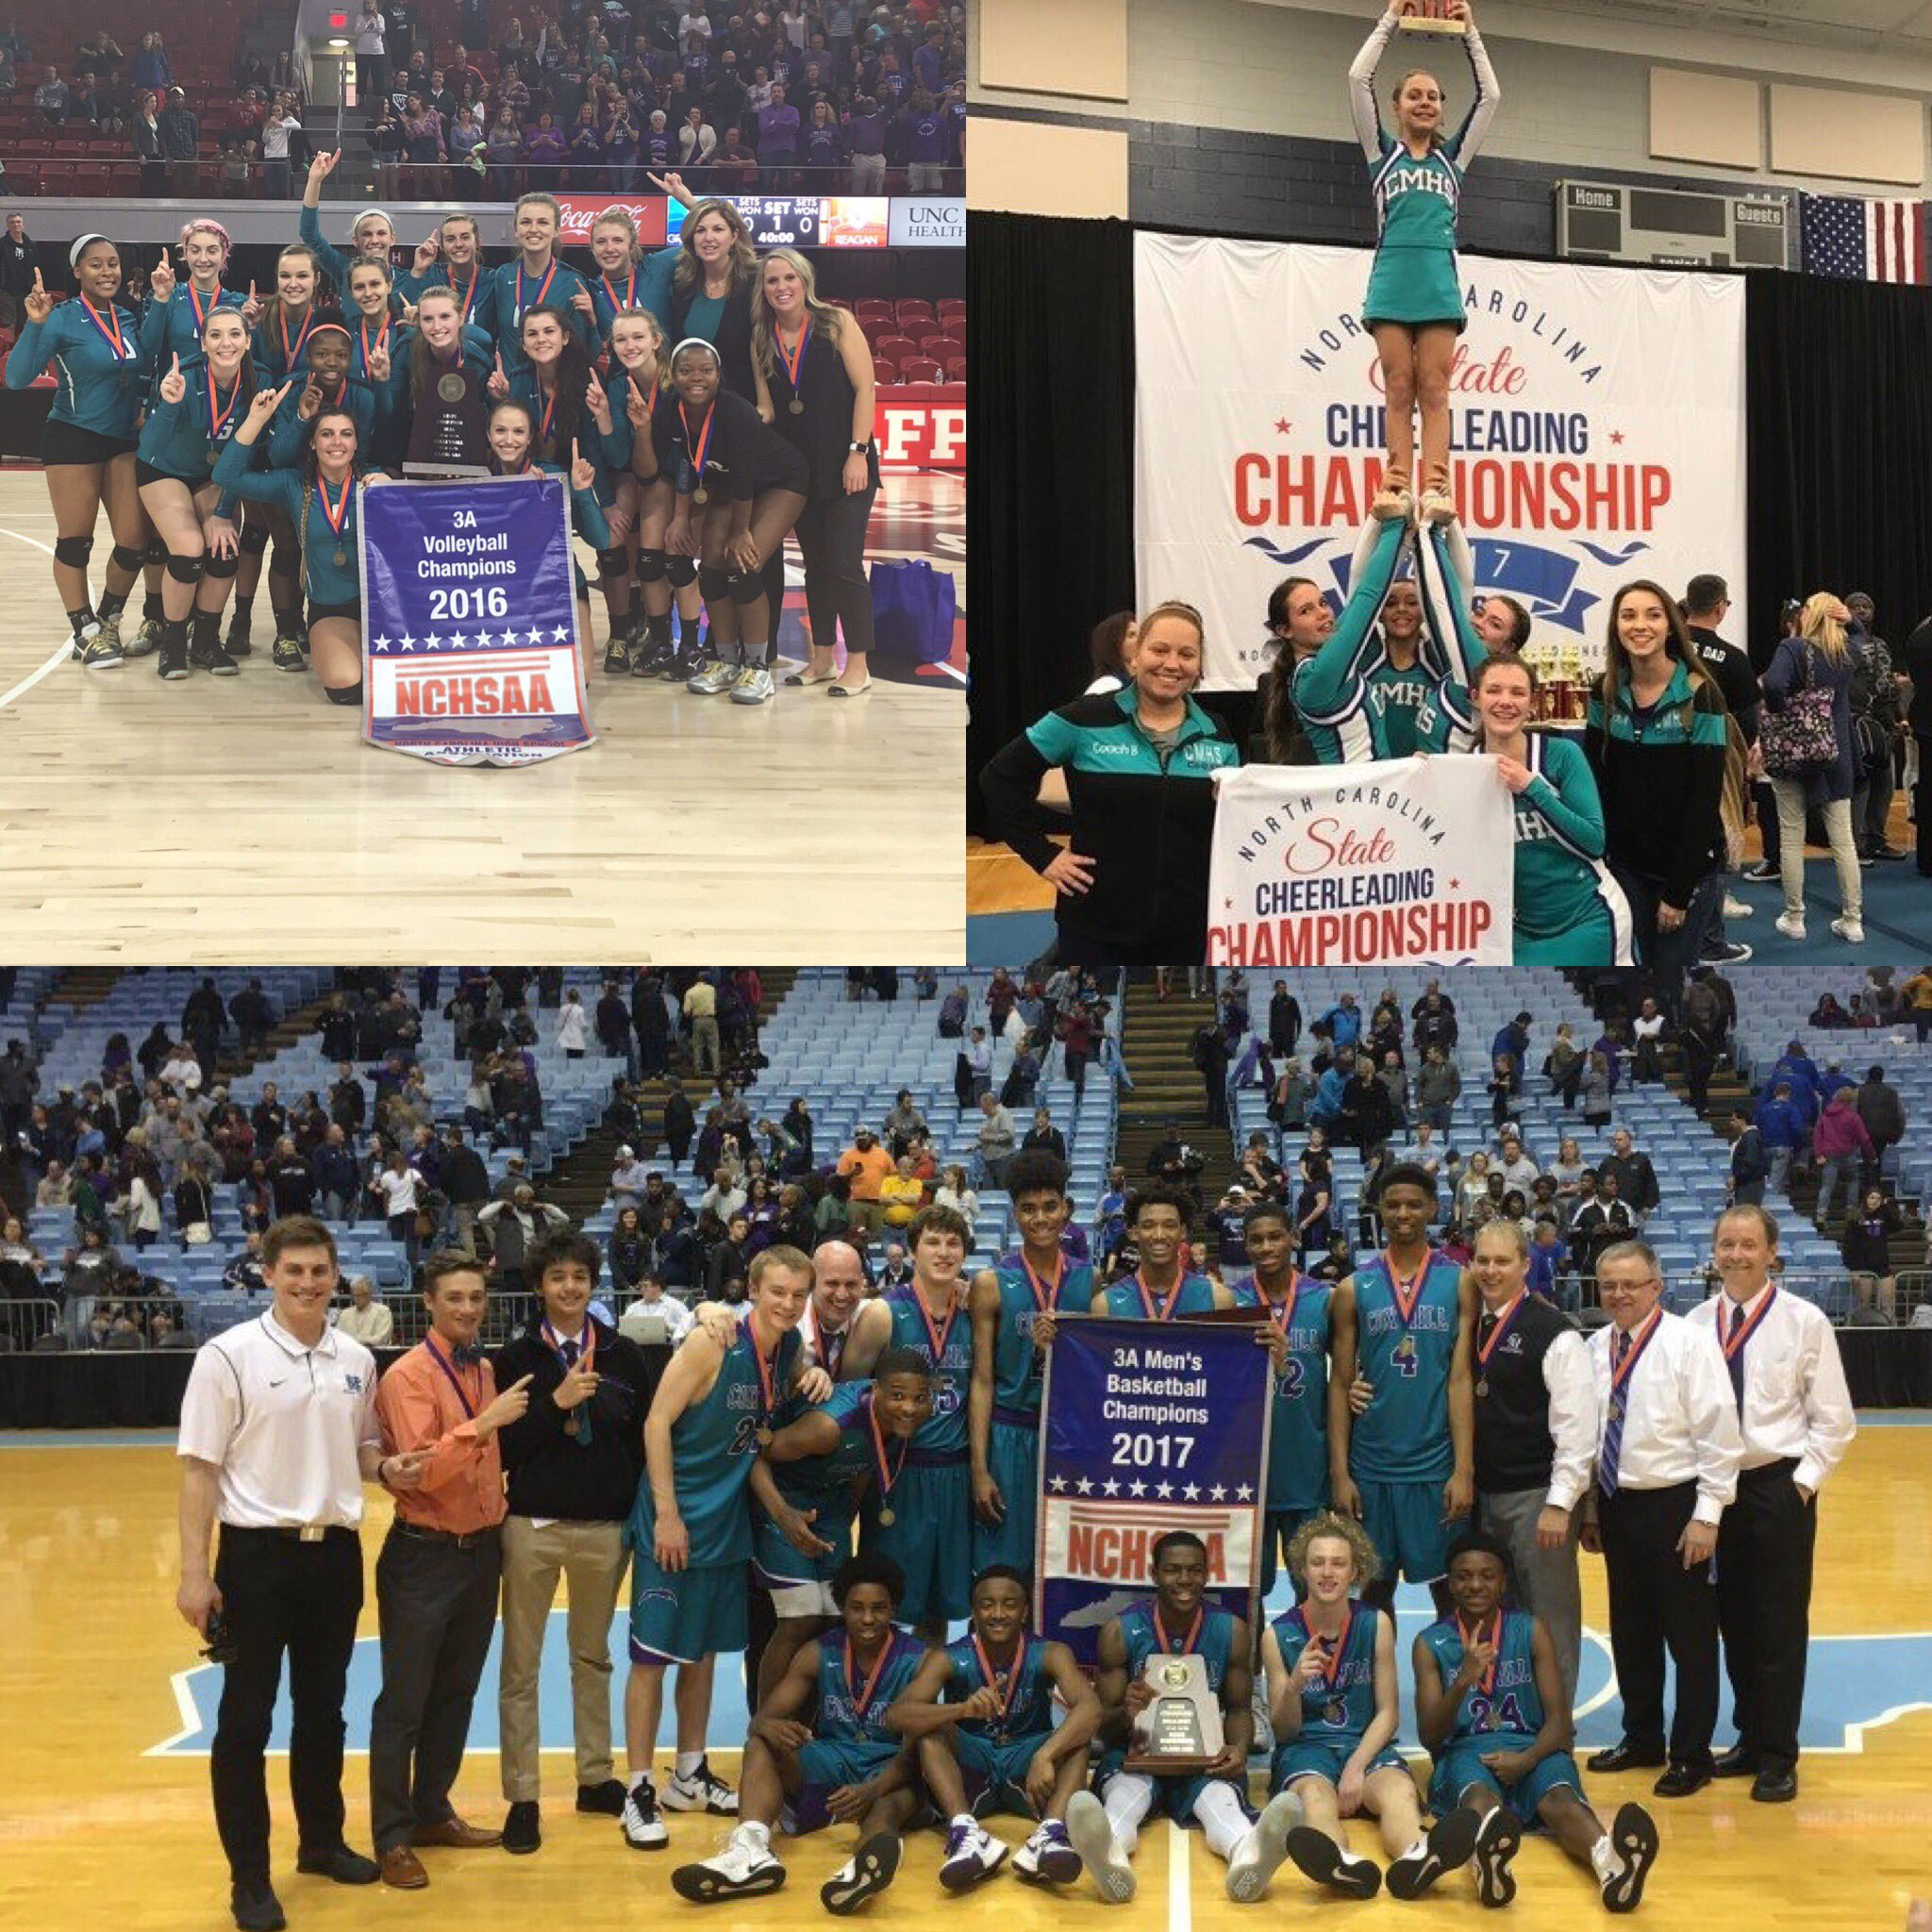 Cox Mill Chargers bringing home those 💍!  #StateChampions #DontYouWishYouWereACharger 🏅🏆🏀🏐🤸♀️ https://t.co/rMpLSrmcVE